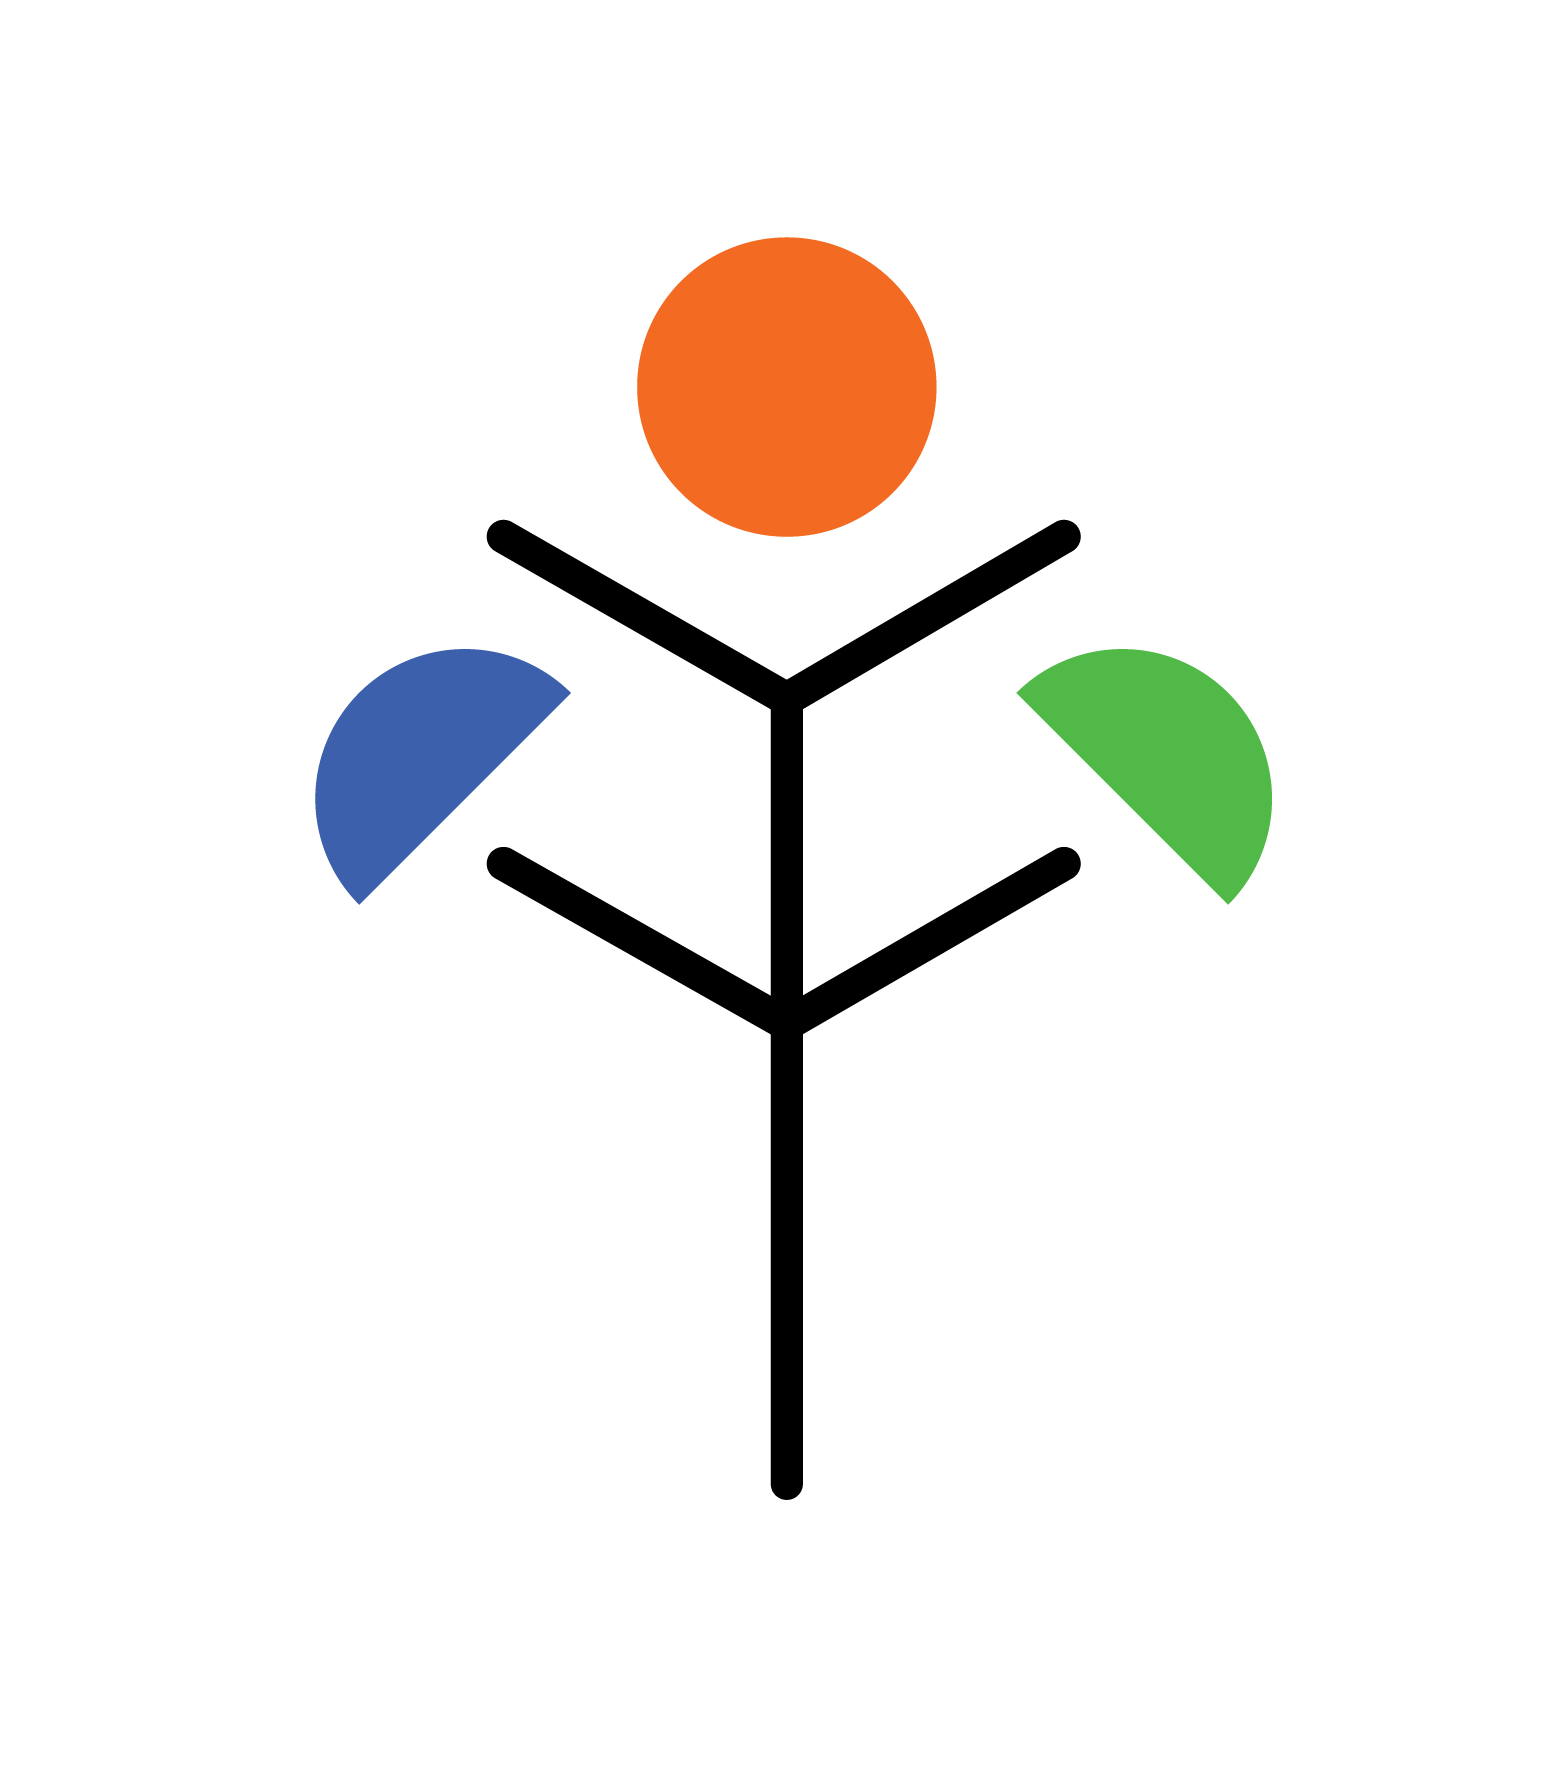 Brendon Fraser's Personal Logo - A personal design for my own works and projects, designed in collaboration with Karma Ääpälä. An F is used to represent my last name, mirrored to create a tree to show my interest in wooden architecture. The orange circle is used to represent my architecture, orange being the colour of creativity and youth. Blue is used to represent my photography work, blue representing theory and intellect. Green is used to represent my cooking and brewing, with green also showing vitality and growth.